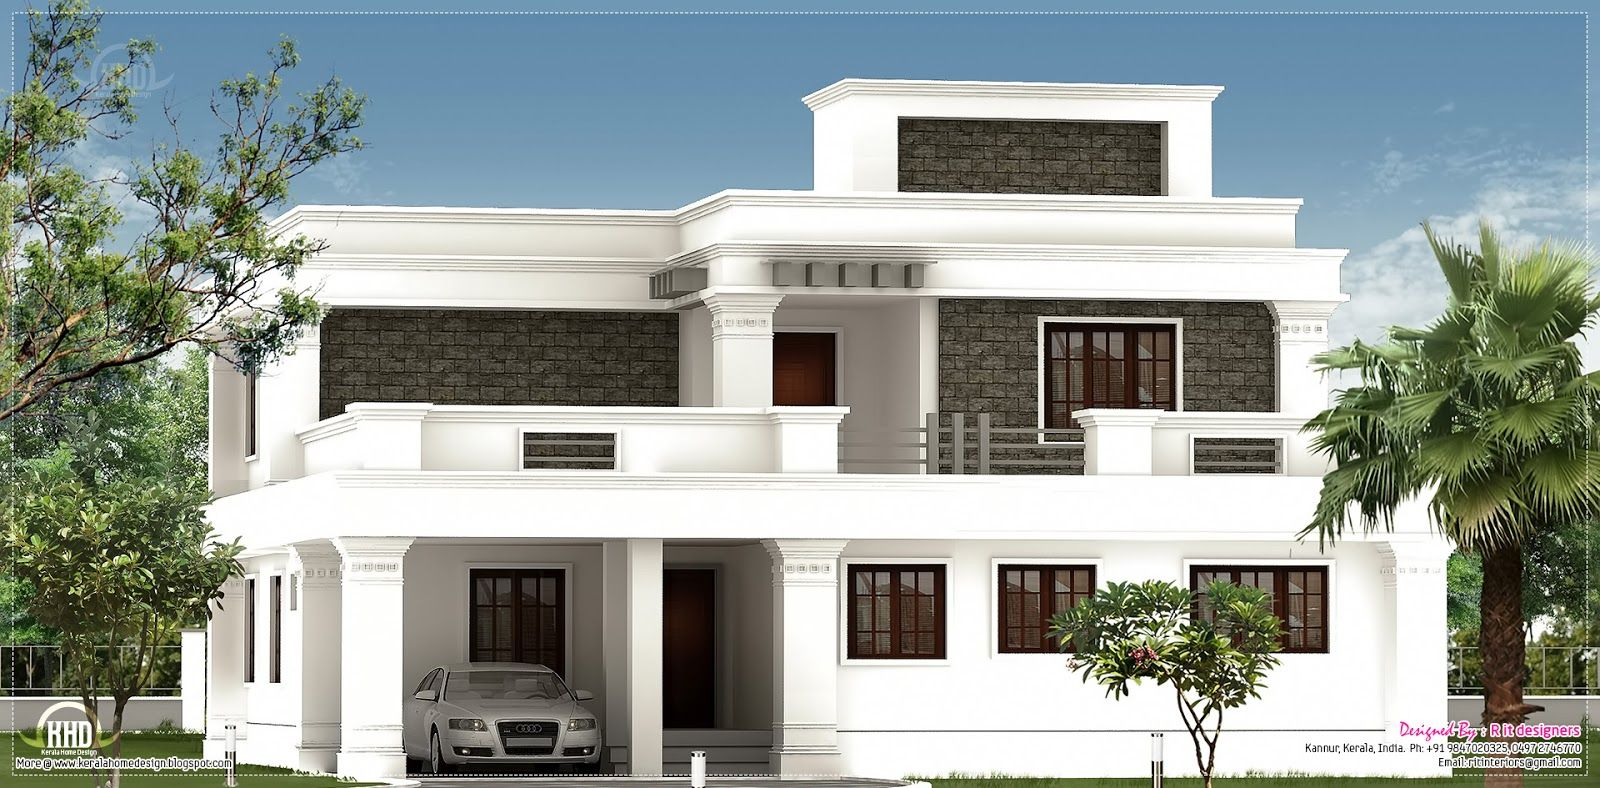 Flat roof homes designs flat roof villa exterior in 2400 for Simple house exterior design